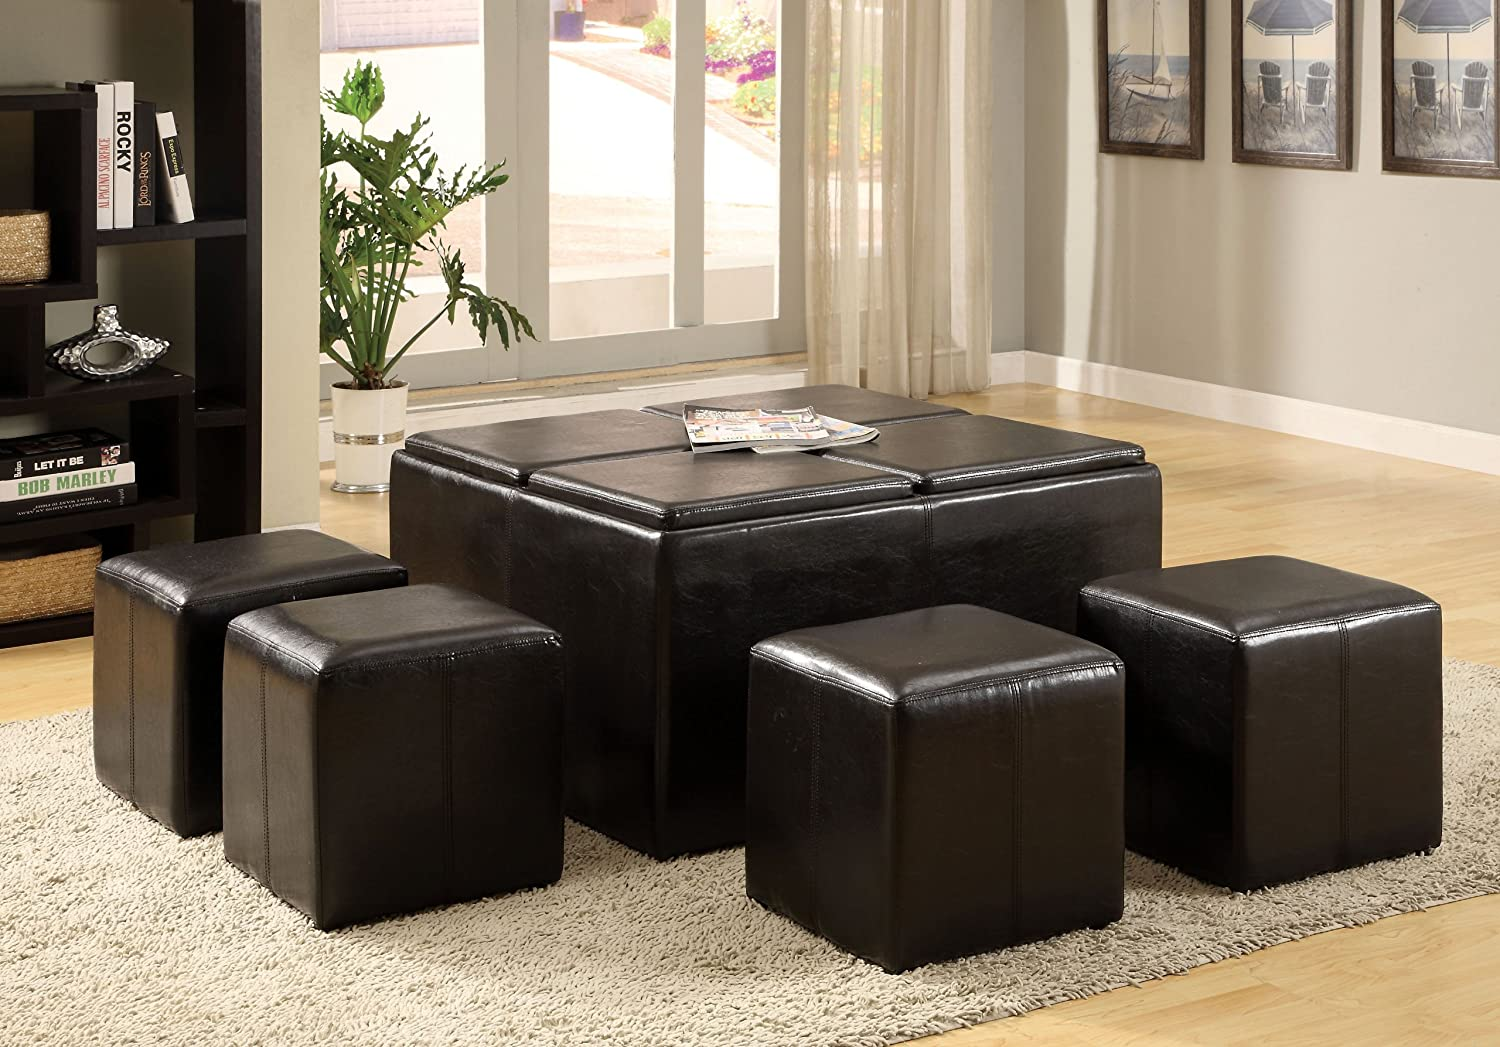 Amazon.com: Furniture Of America 5 Piece Cocktail Ottoman Table And Stool  Set, Dark Espresso: Kitchen U0026 Dining